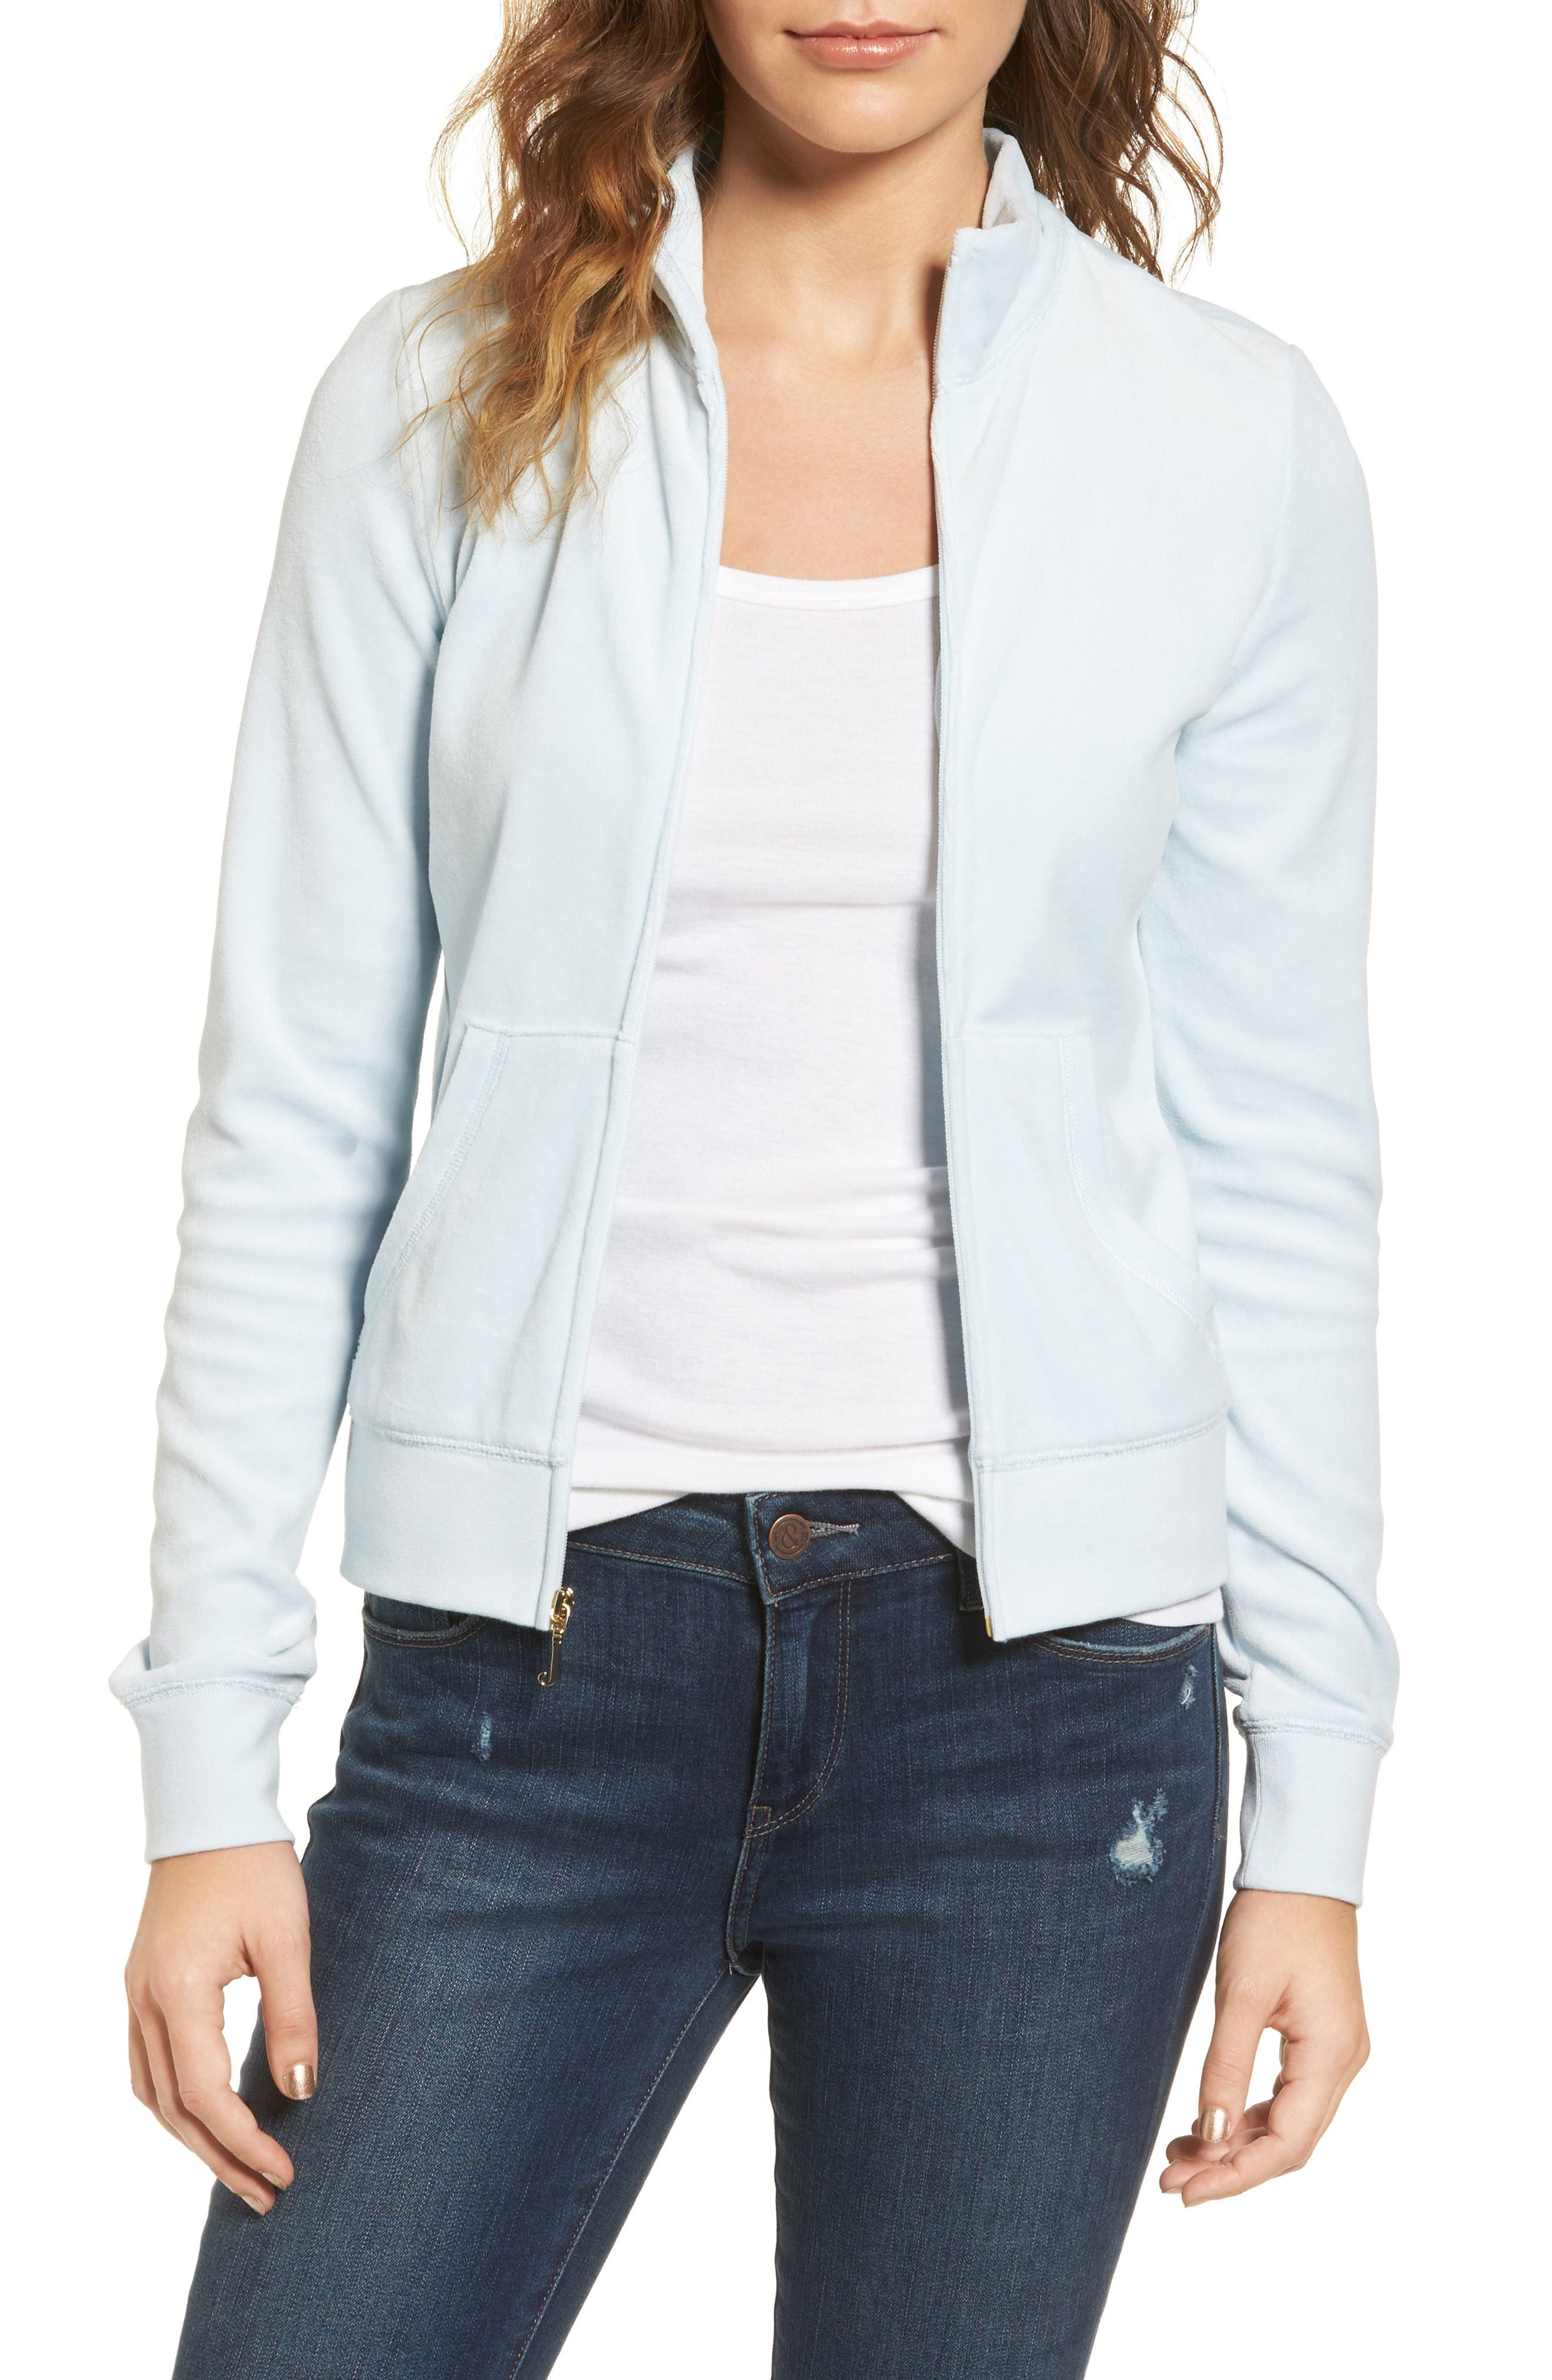 Juicy Couture Fairfax Velour Track Jacket